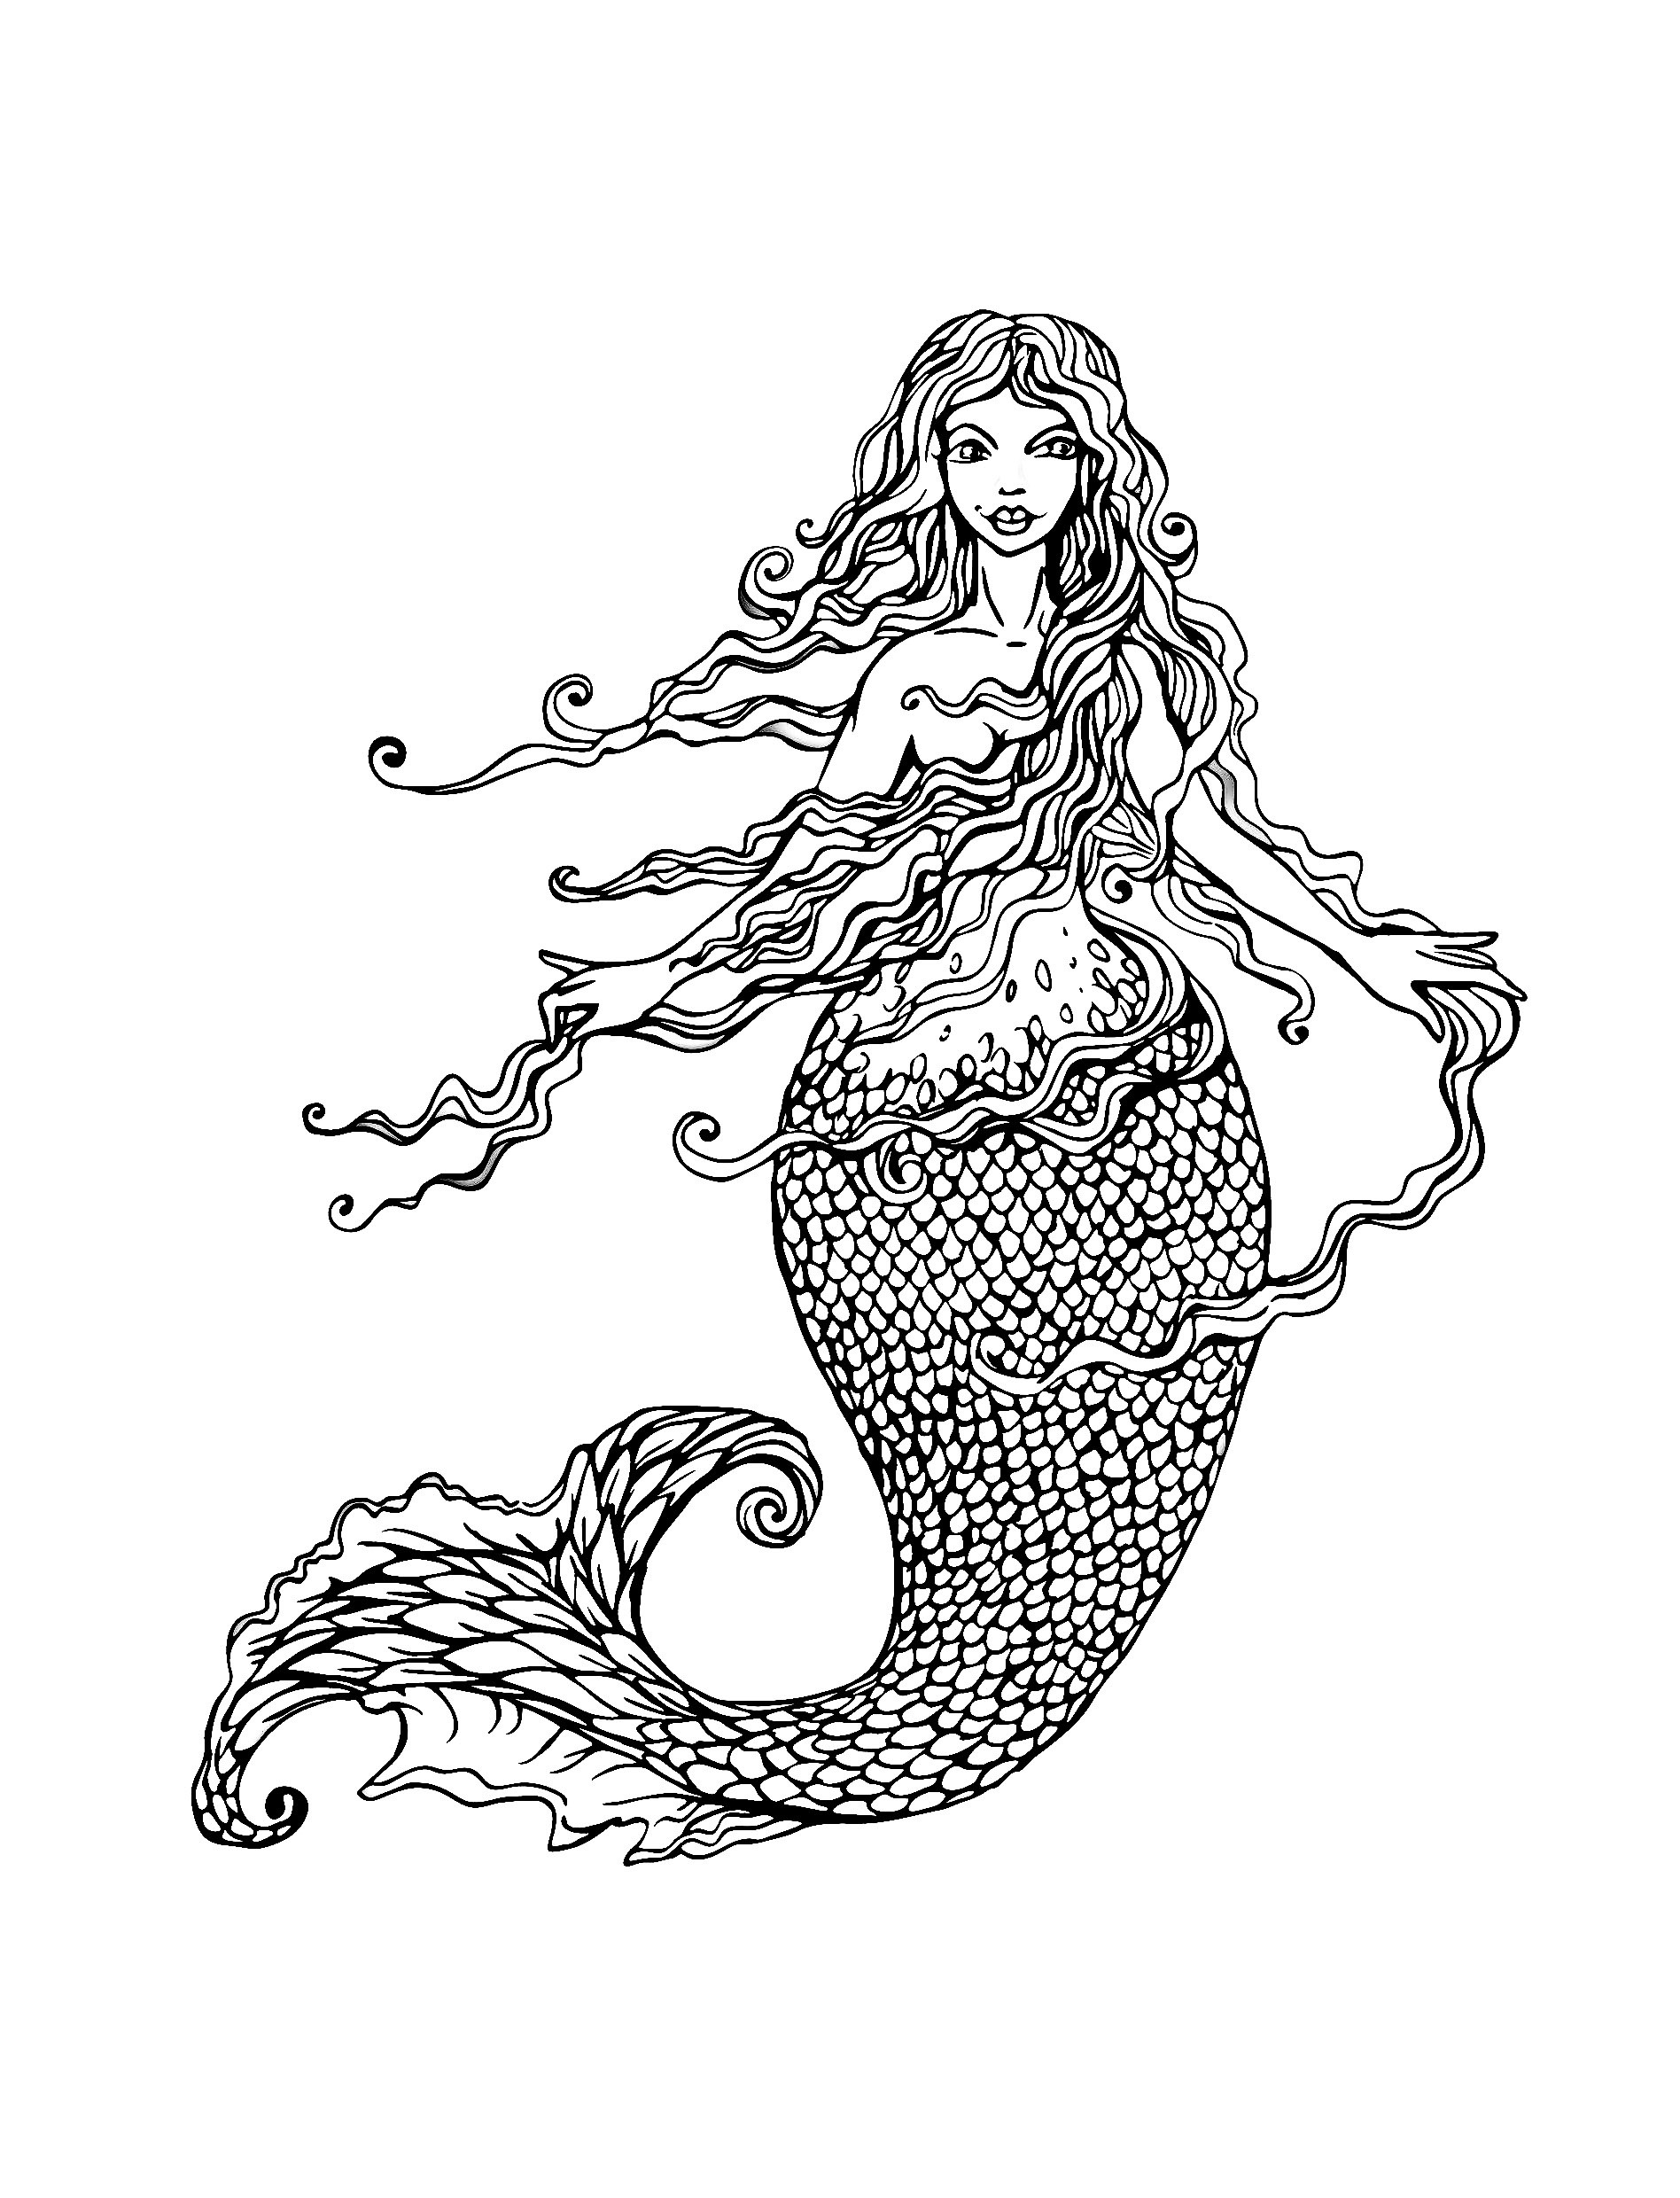 Beautiful Mermaid Coloring Pages At Getdrawings Com Free For